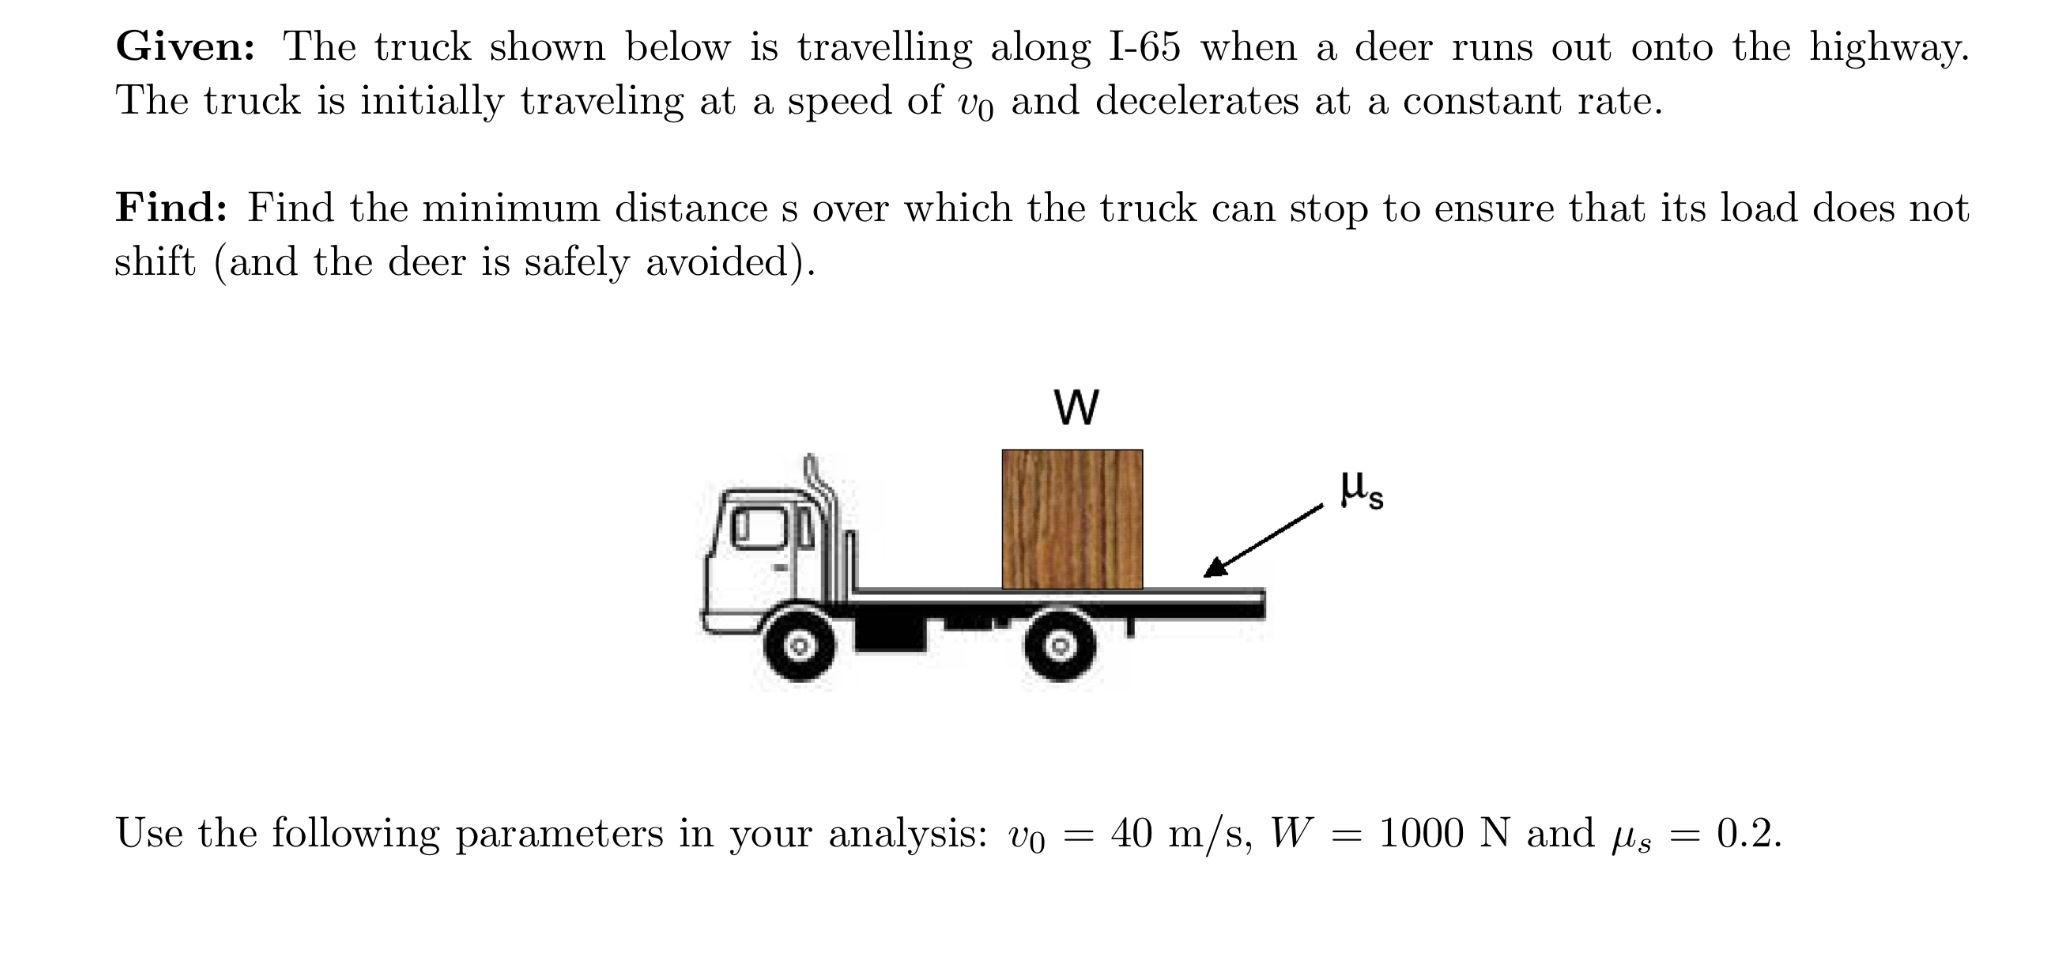 Given: The truck shown below is travelling along 1